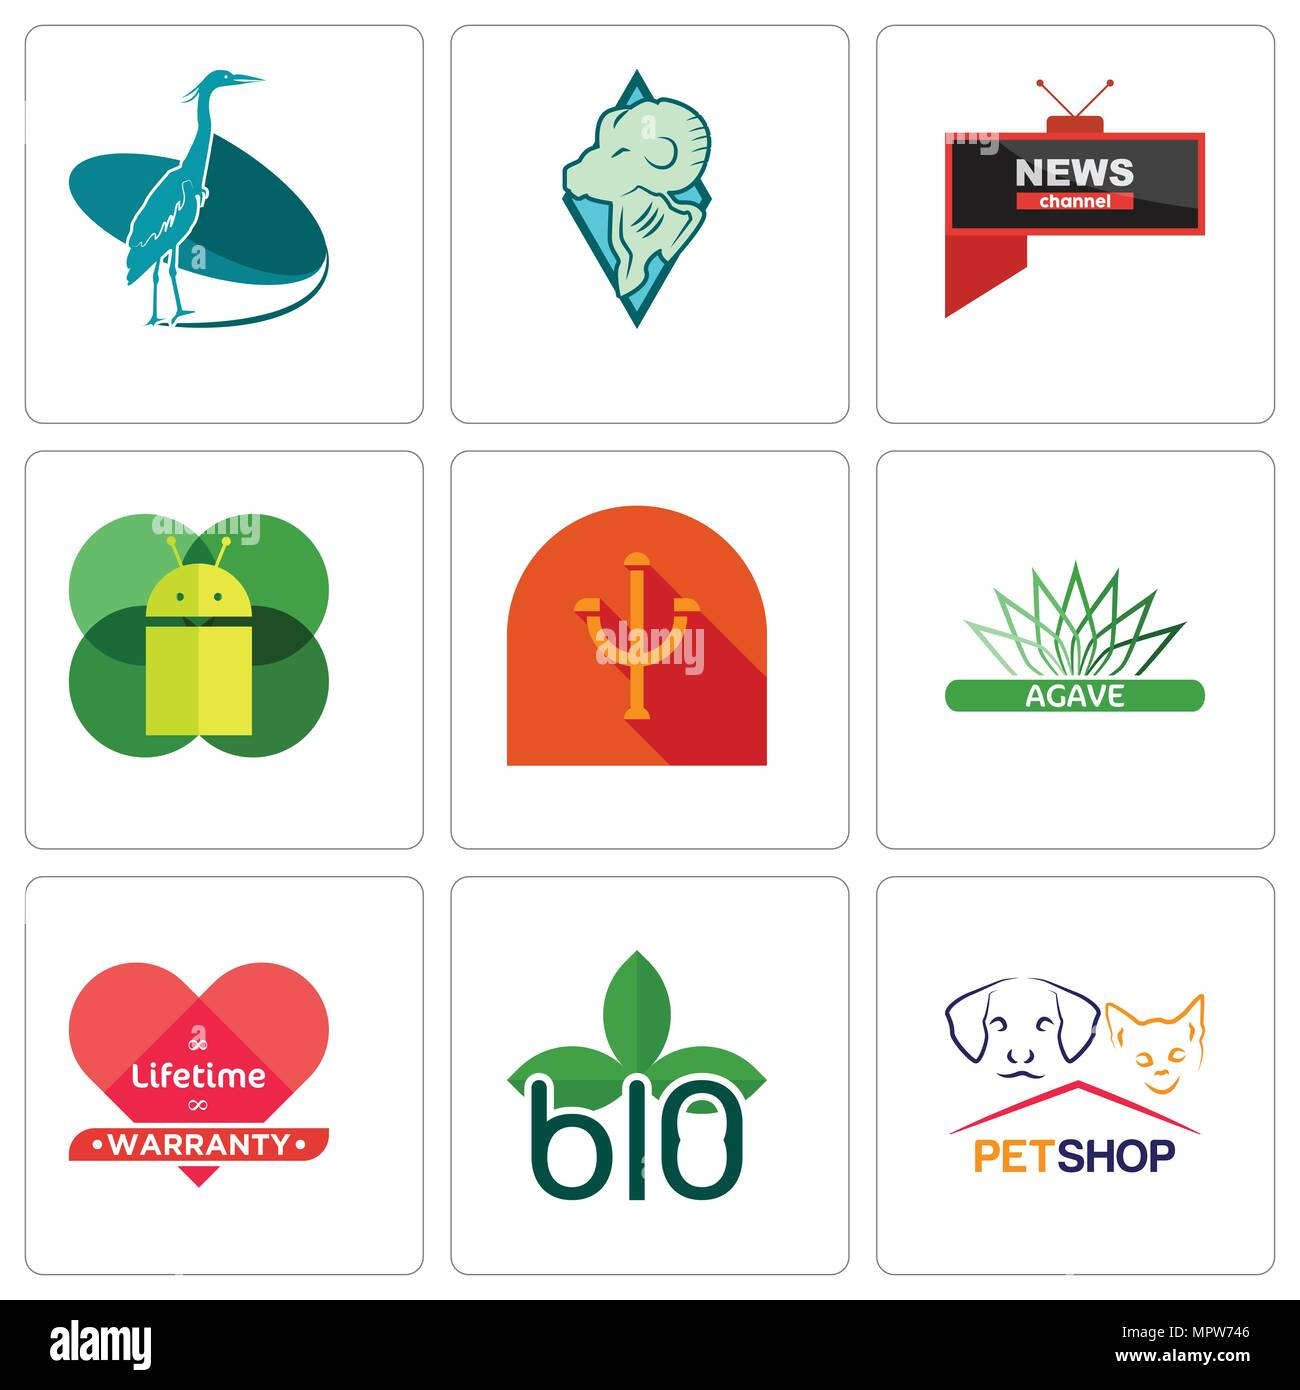 Set Of 9 simple editable icons such as petshop, biodegradable, lifetime warranty, agave, psi, mobile os a, all news channel, rams, heron, can be used  - Stock Vector